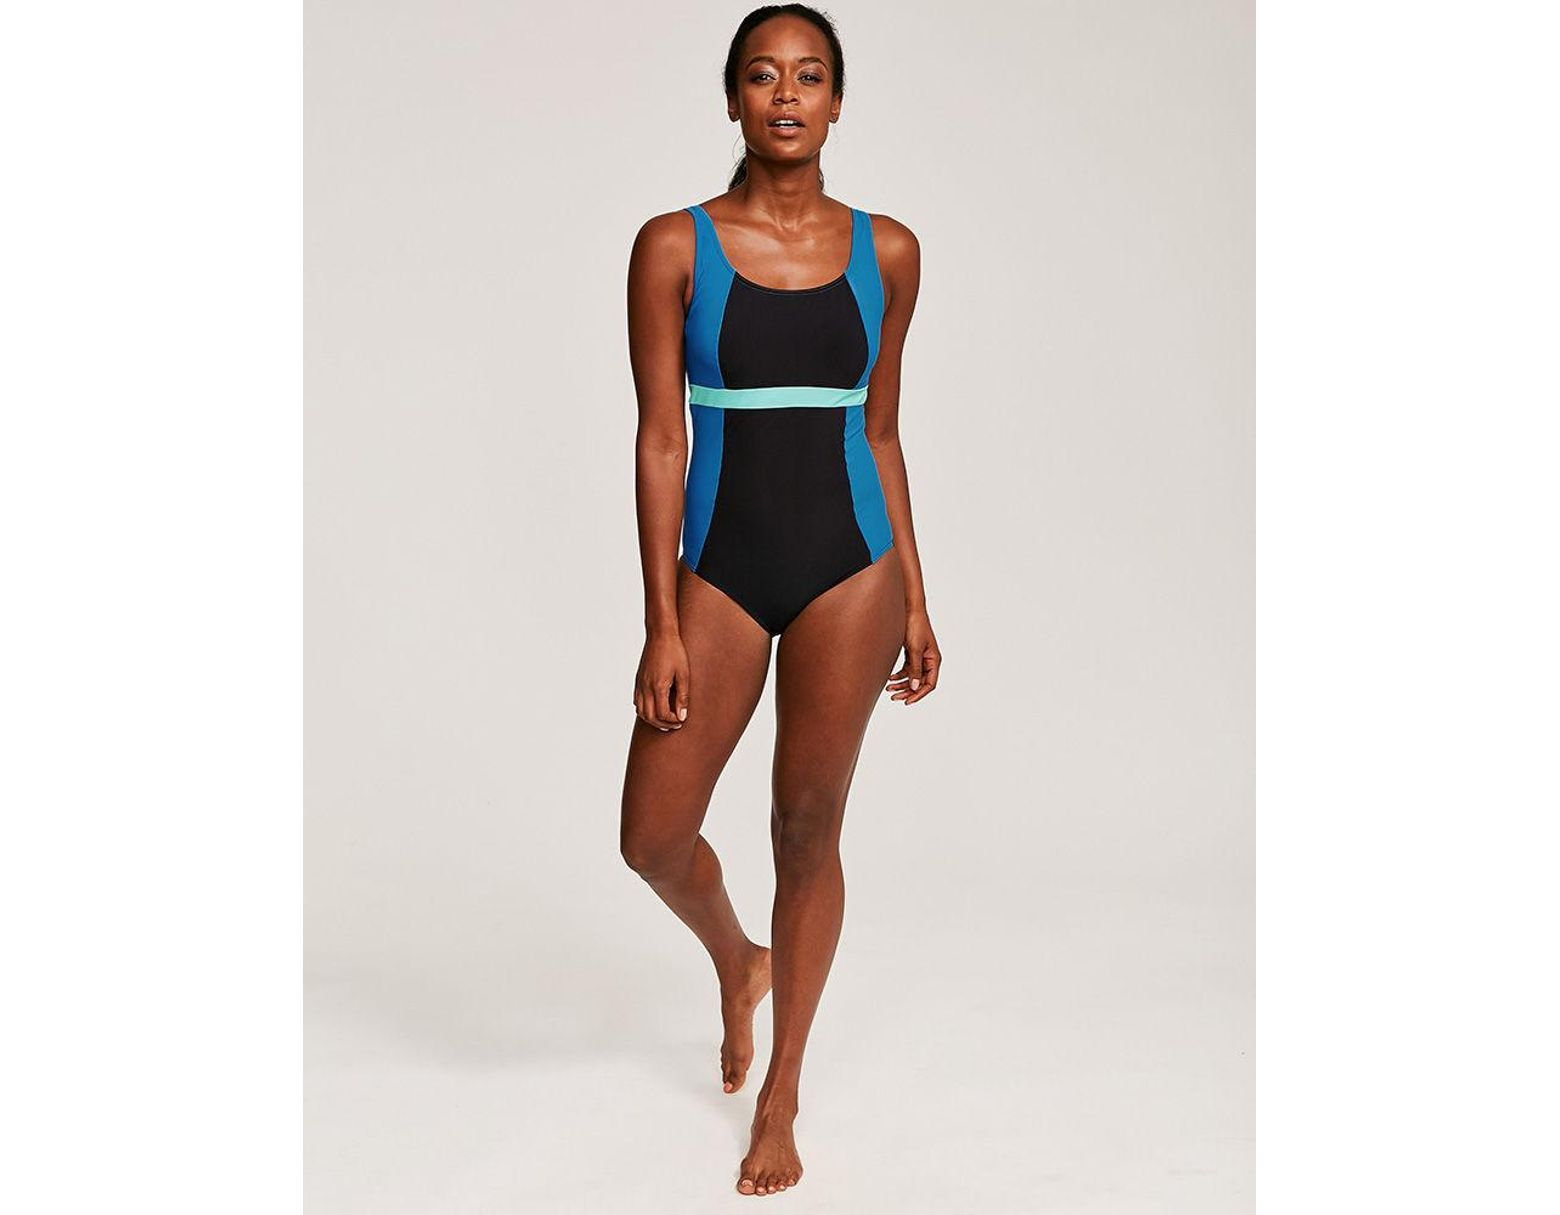 ef86af4bbc Figleaves Freestyle Sports Underwired Colourblock Swimsuit C-GG Cup in  Black - Lyst